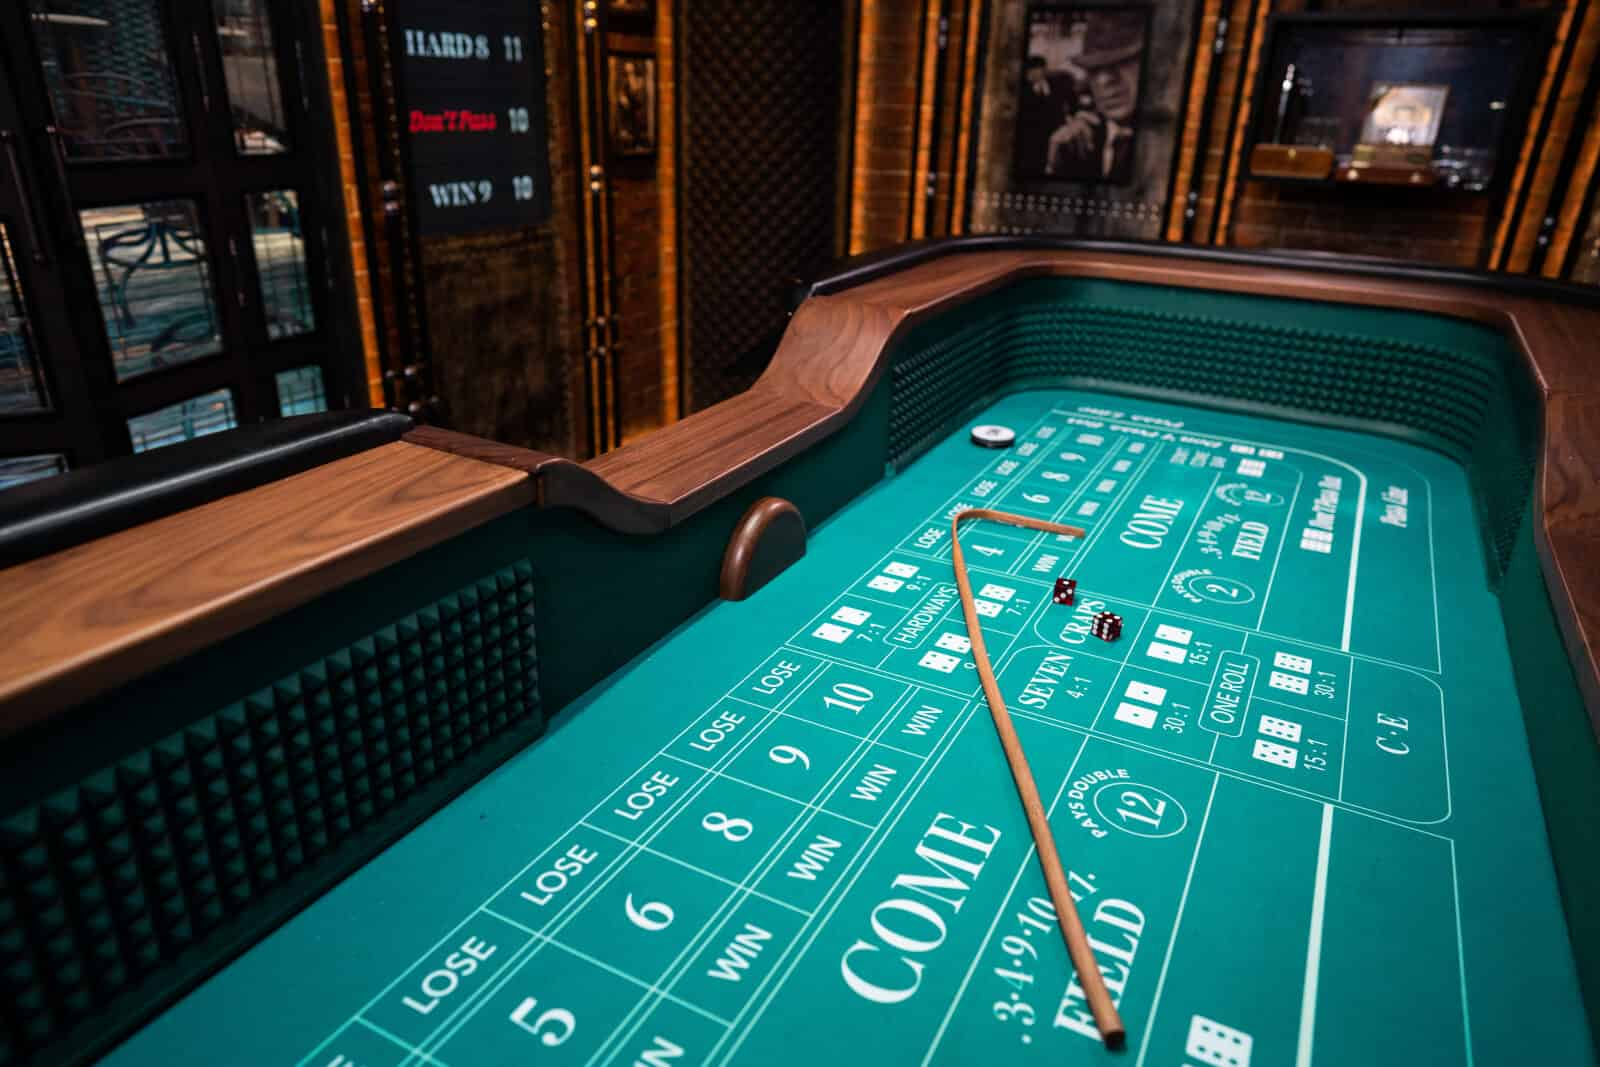 image of a craps table showing the felt and bet options.